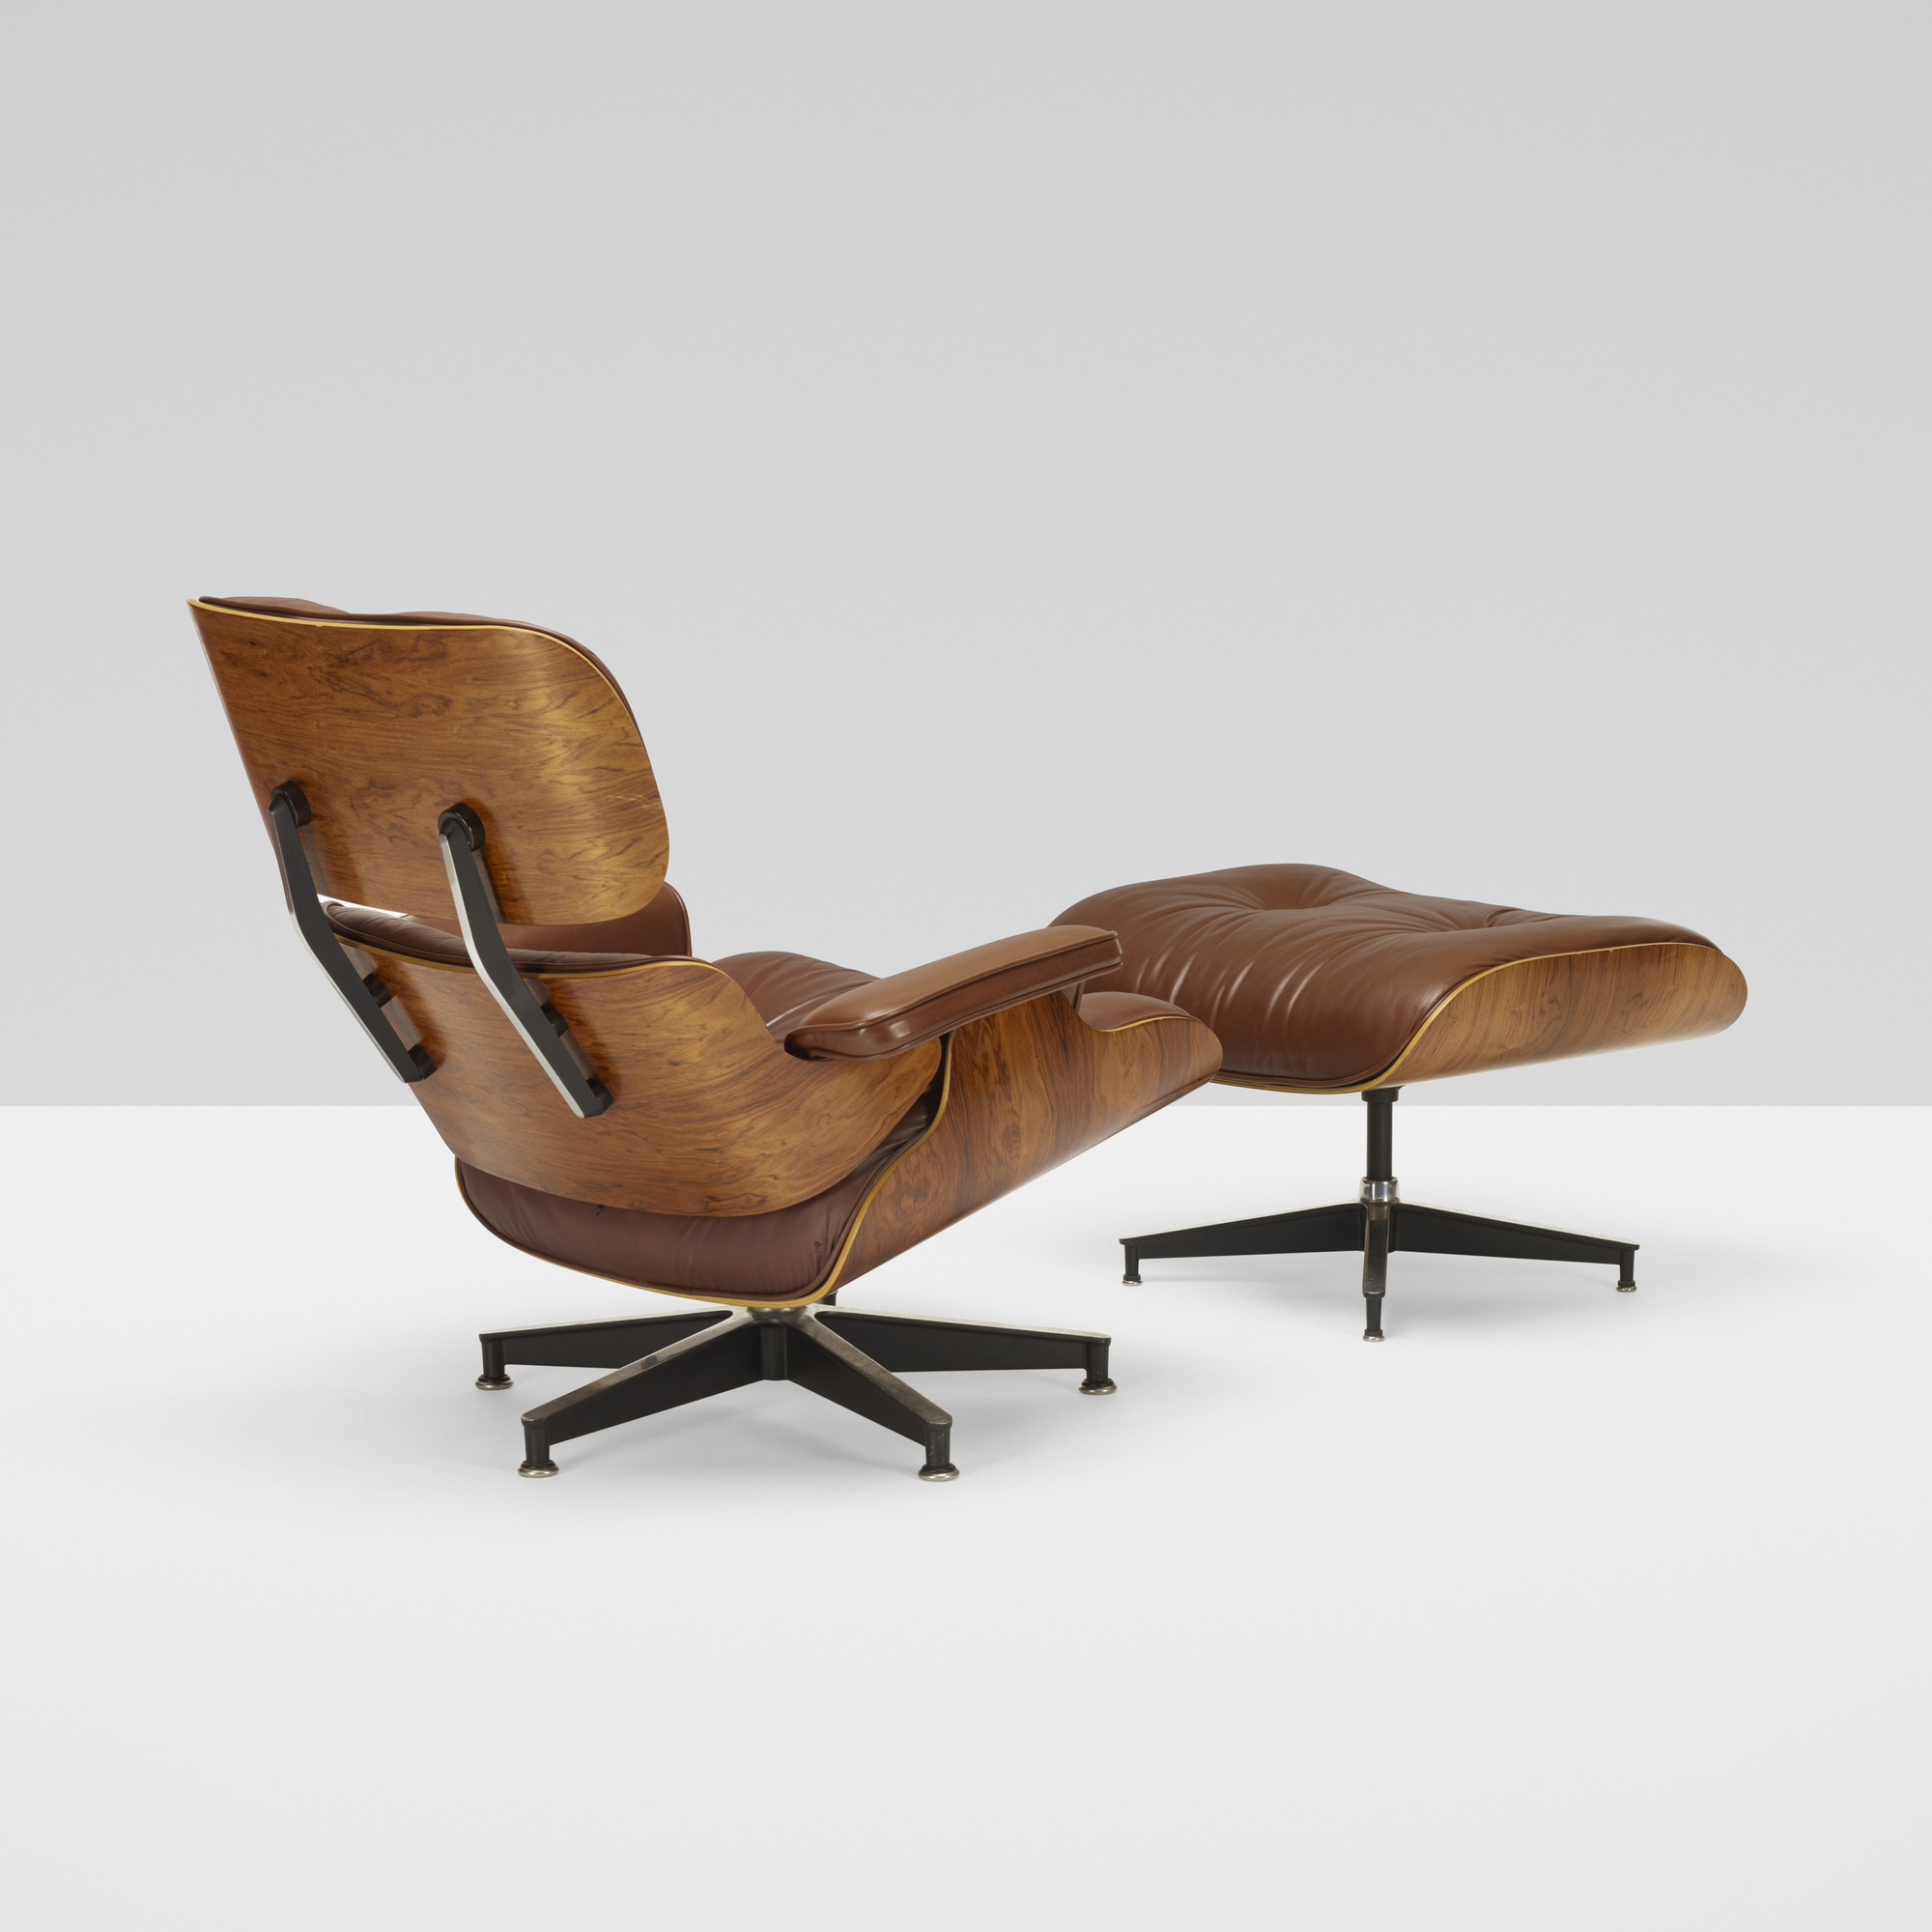 357: Charles and Ray Eames / 670 lounge chair and 671 ottoman (3 of 6)